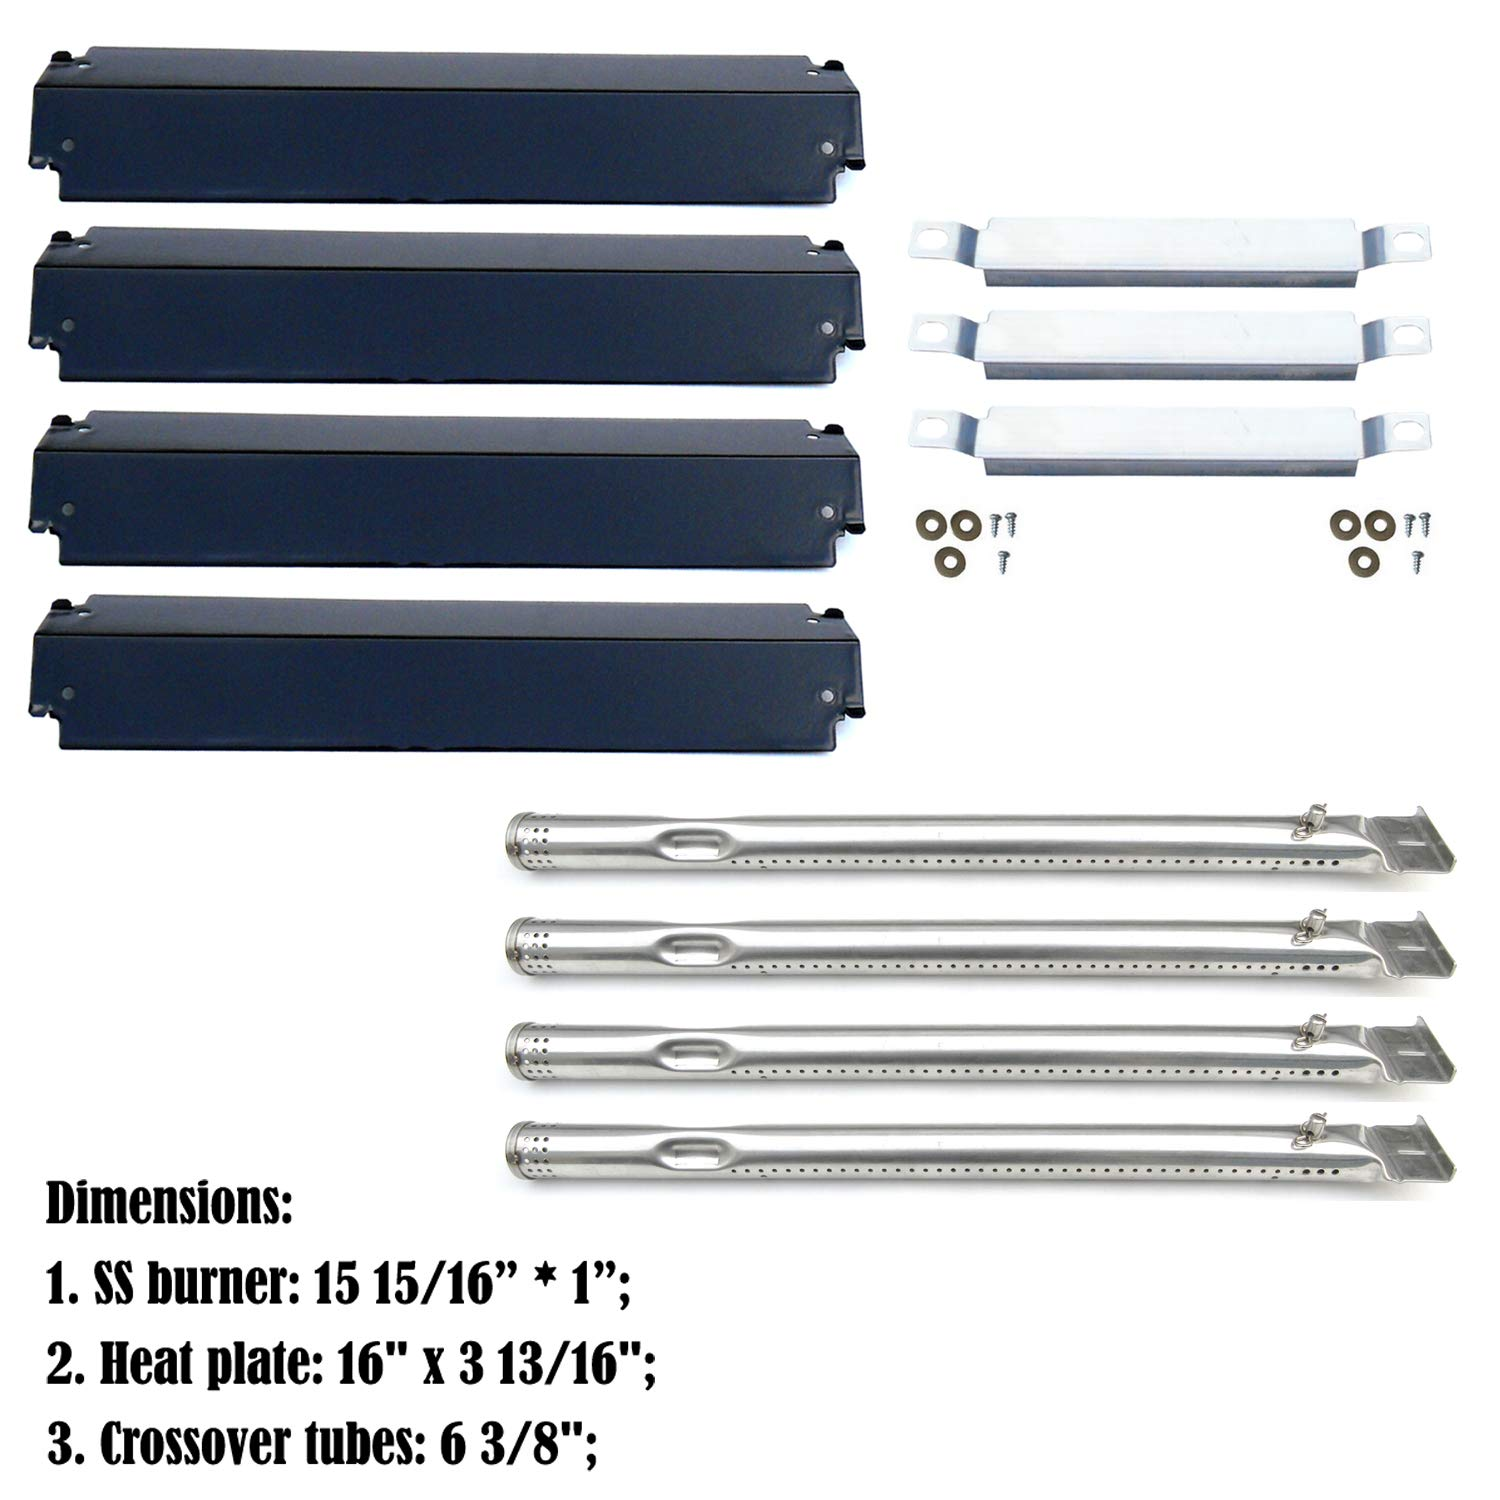 Direct store Parts Kit DG149 Replacement Charbroil 463247310,463257010 Gas Grill Burner,Crossover Tubes,Heat Shield-4 pack SS Burner + SS Carry-over tubes + Porcelain Steel Heat Plate